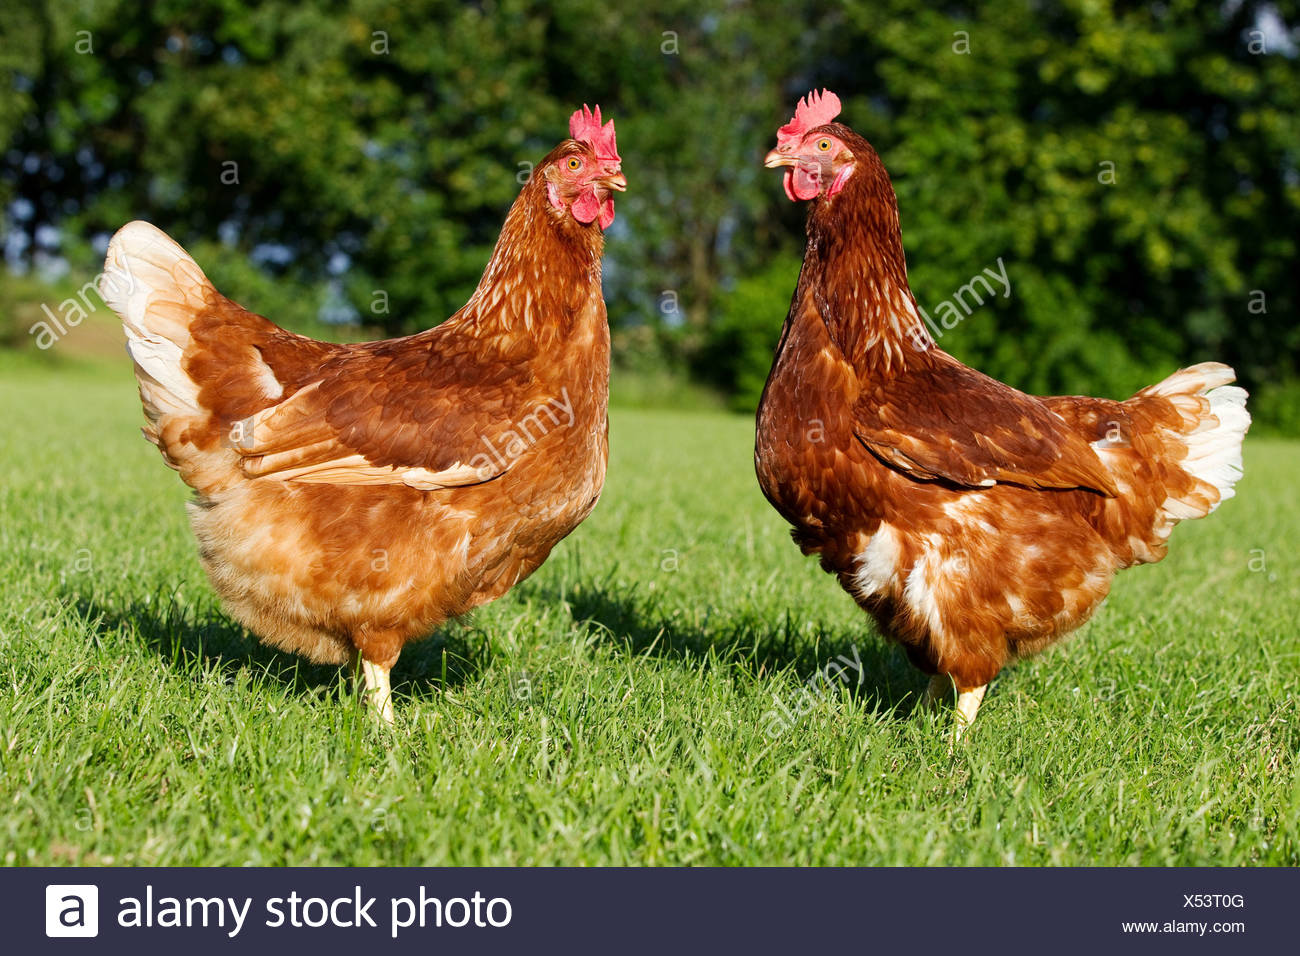 Two hens on grass Stock Photo